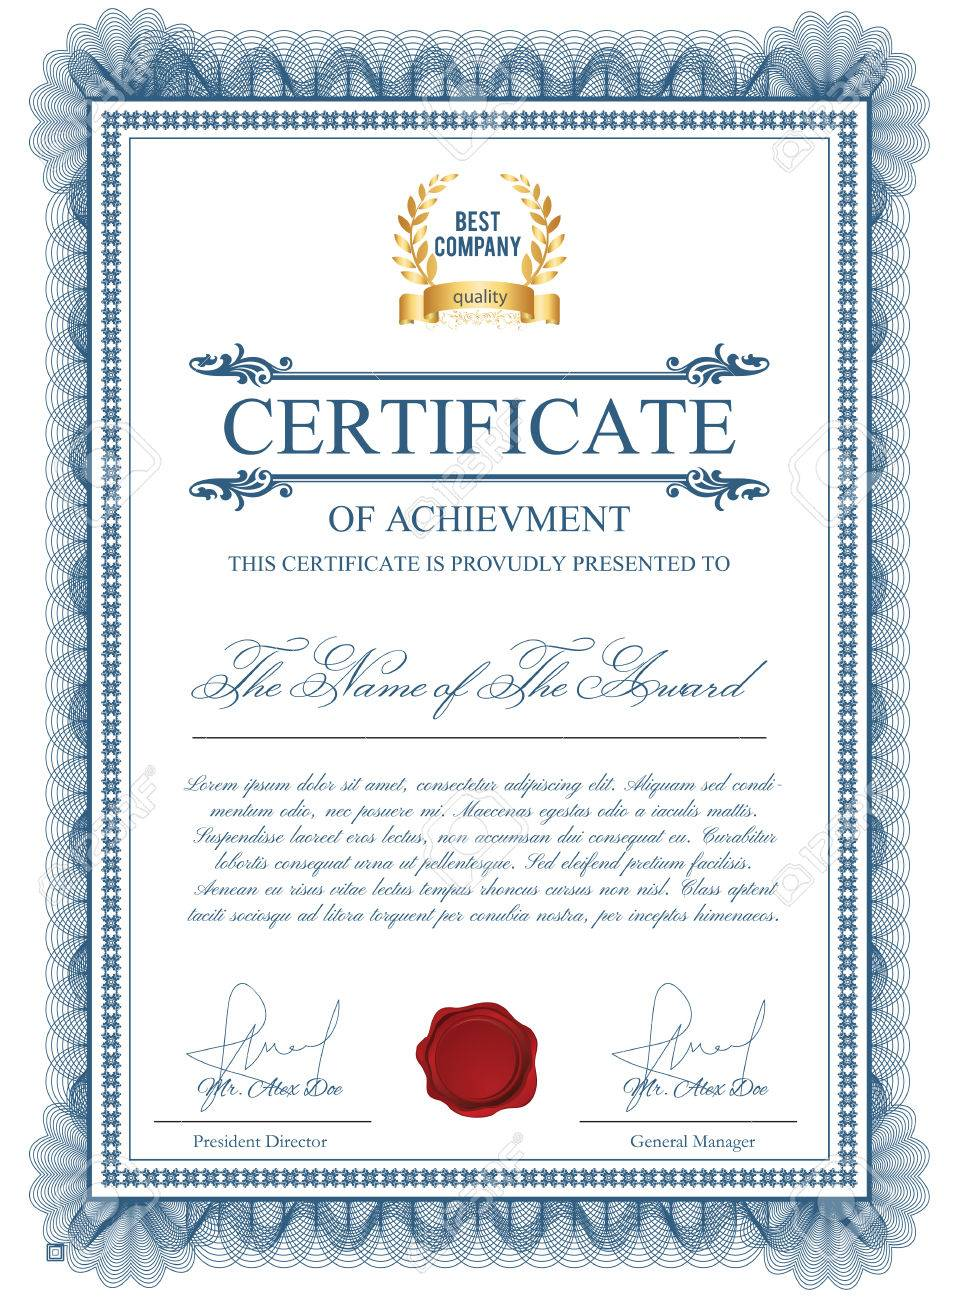 Certificate Template With Guilloche Elements. Blue Diploma Border Design  For Personal Conferment. Layout For  Certificate Layout